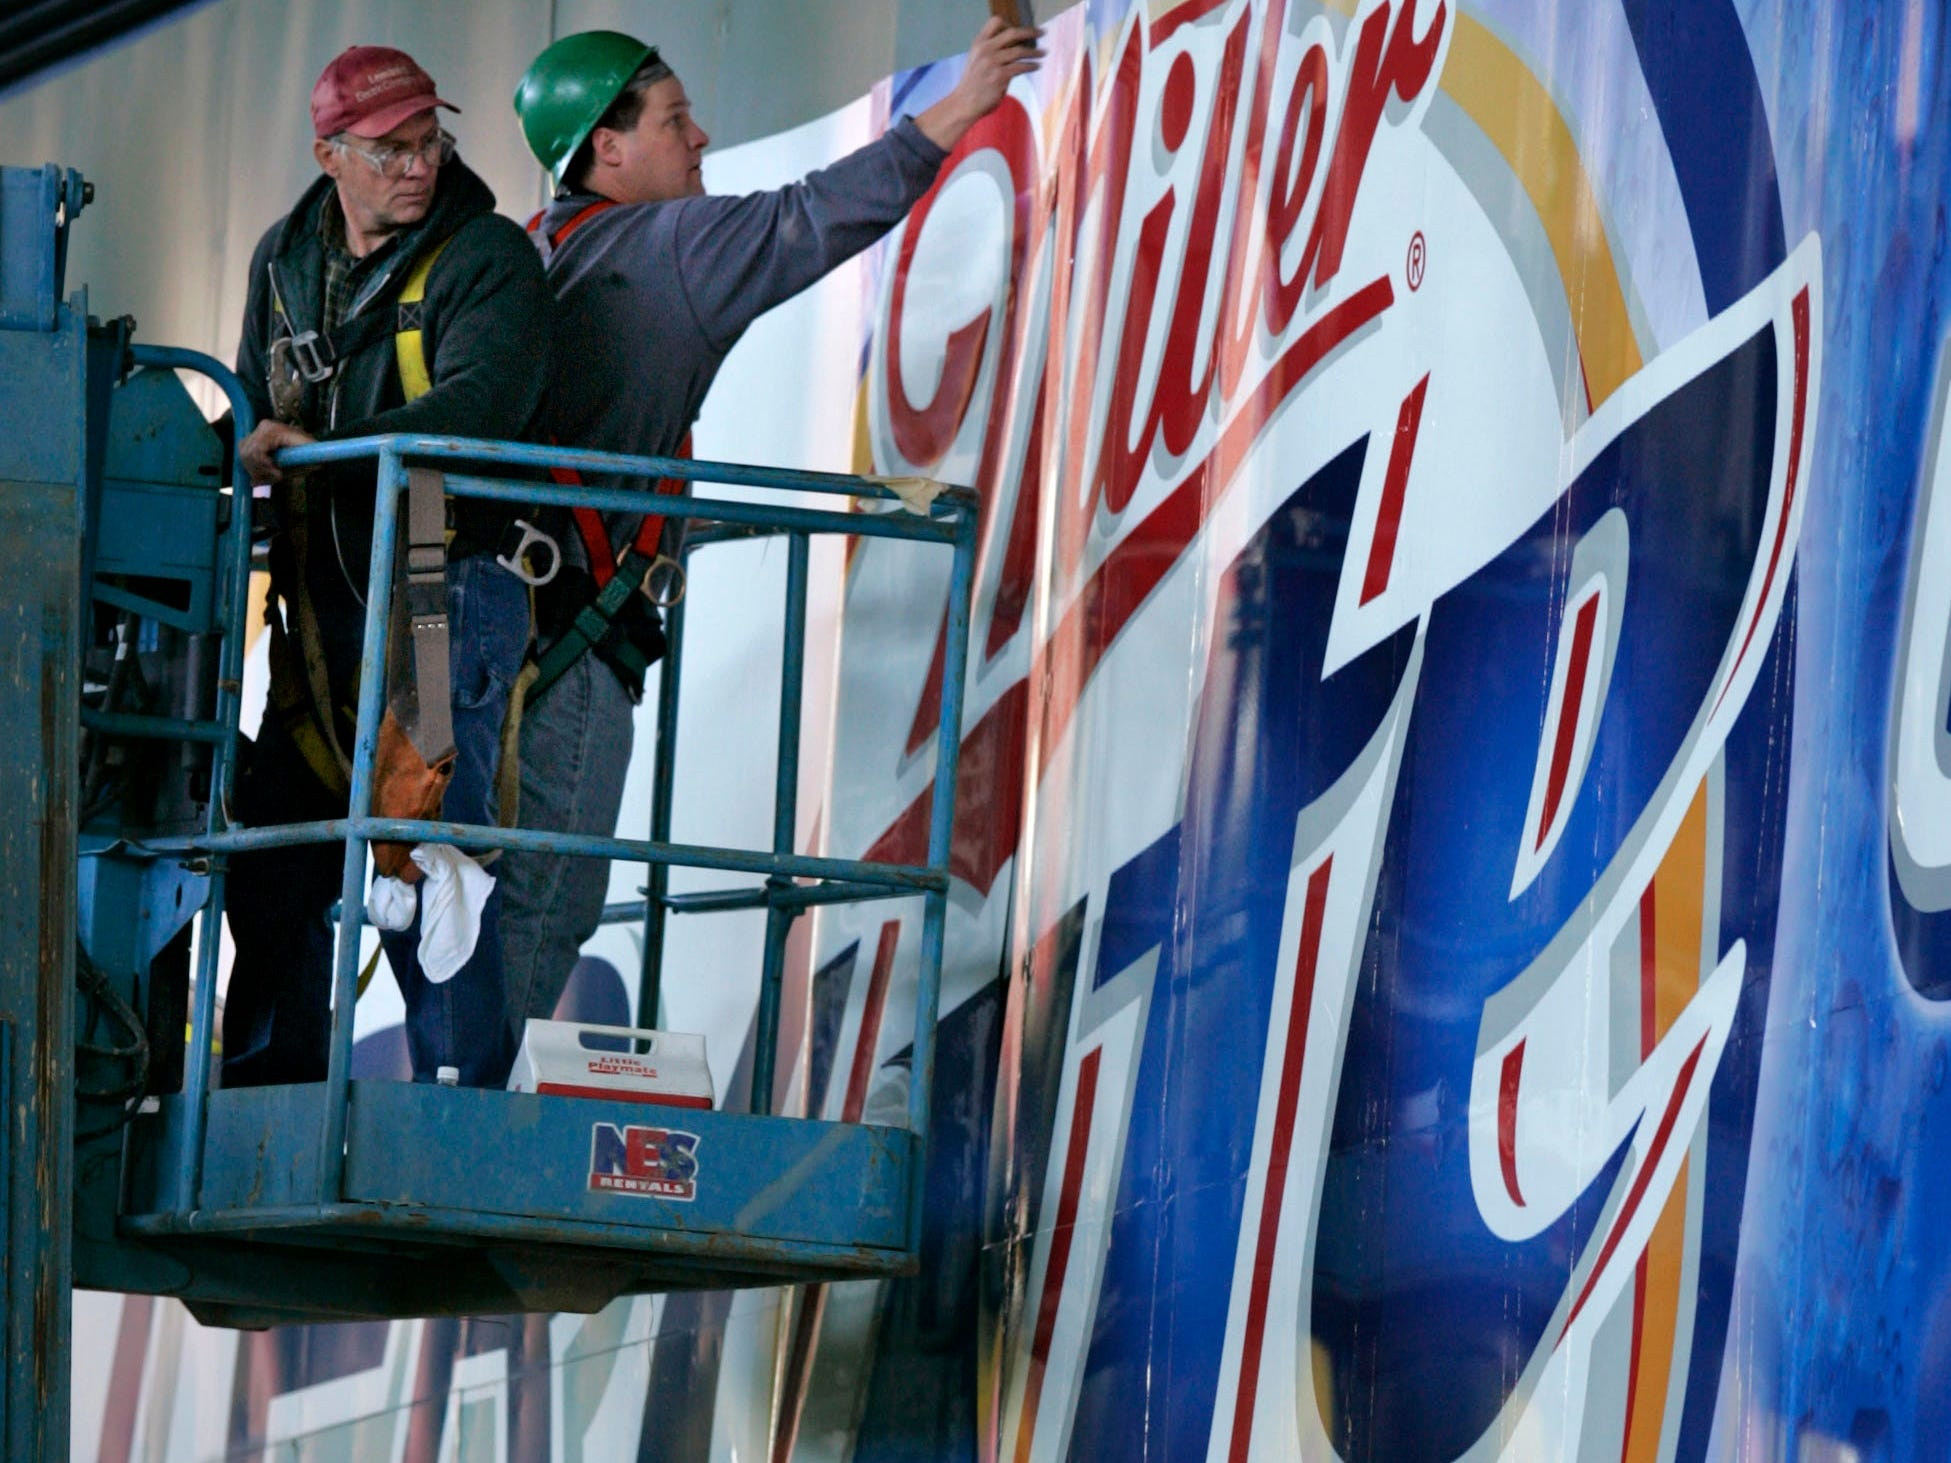 Paul Olson, right, and Dave Meinholz install one panel of many on a Miller advertisement  on the main scoreboard at Miller Park, Thursday, April 7, 2005.